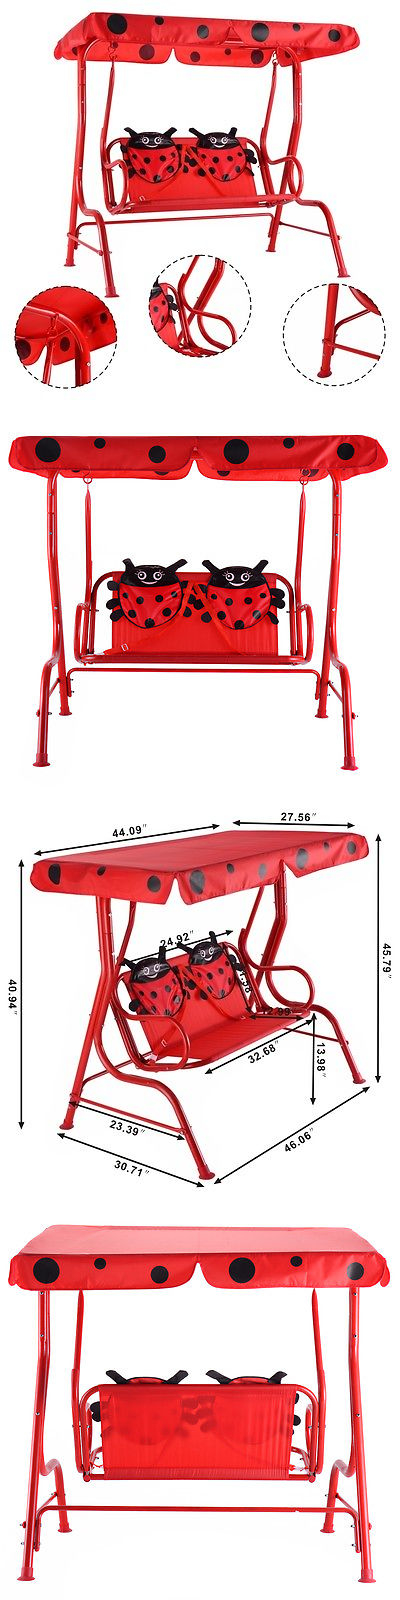 Swings Slides And Gyms 16515: Kids Patio Swing Chair Children Porch Bench  Canopy 2 Person